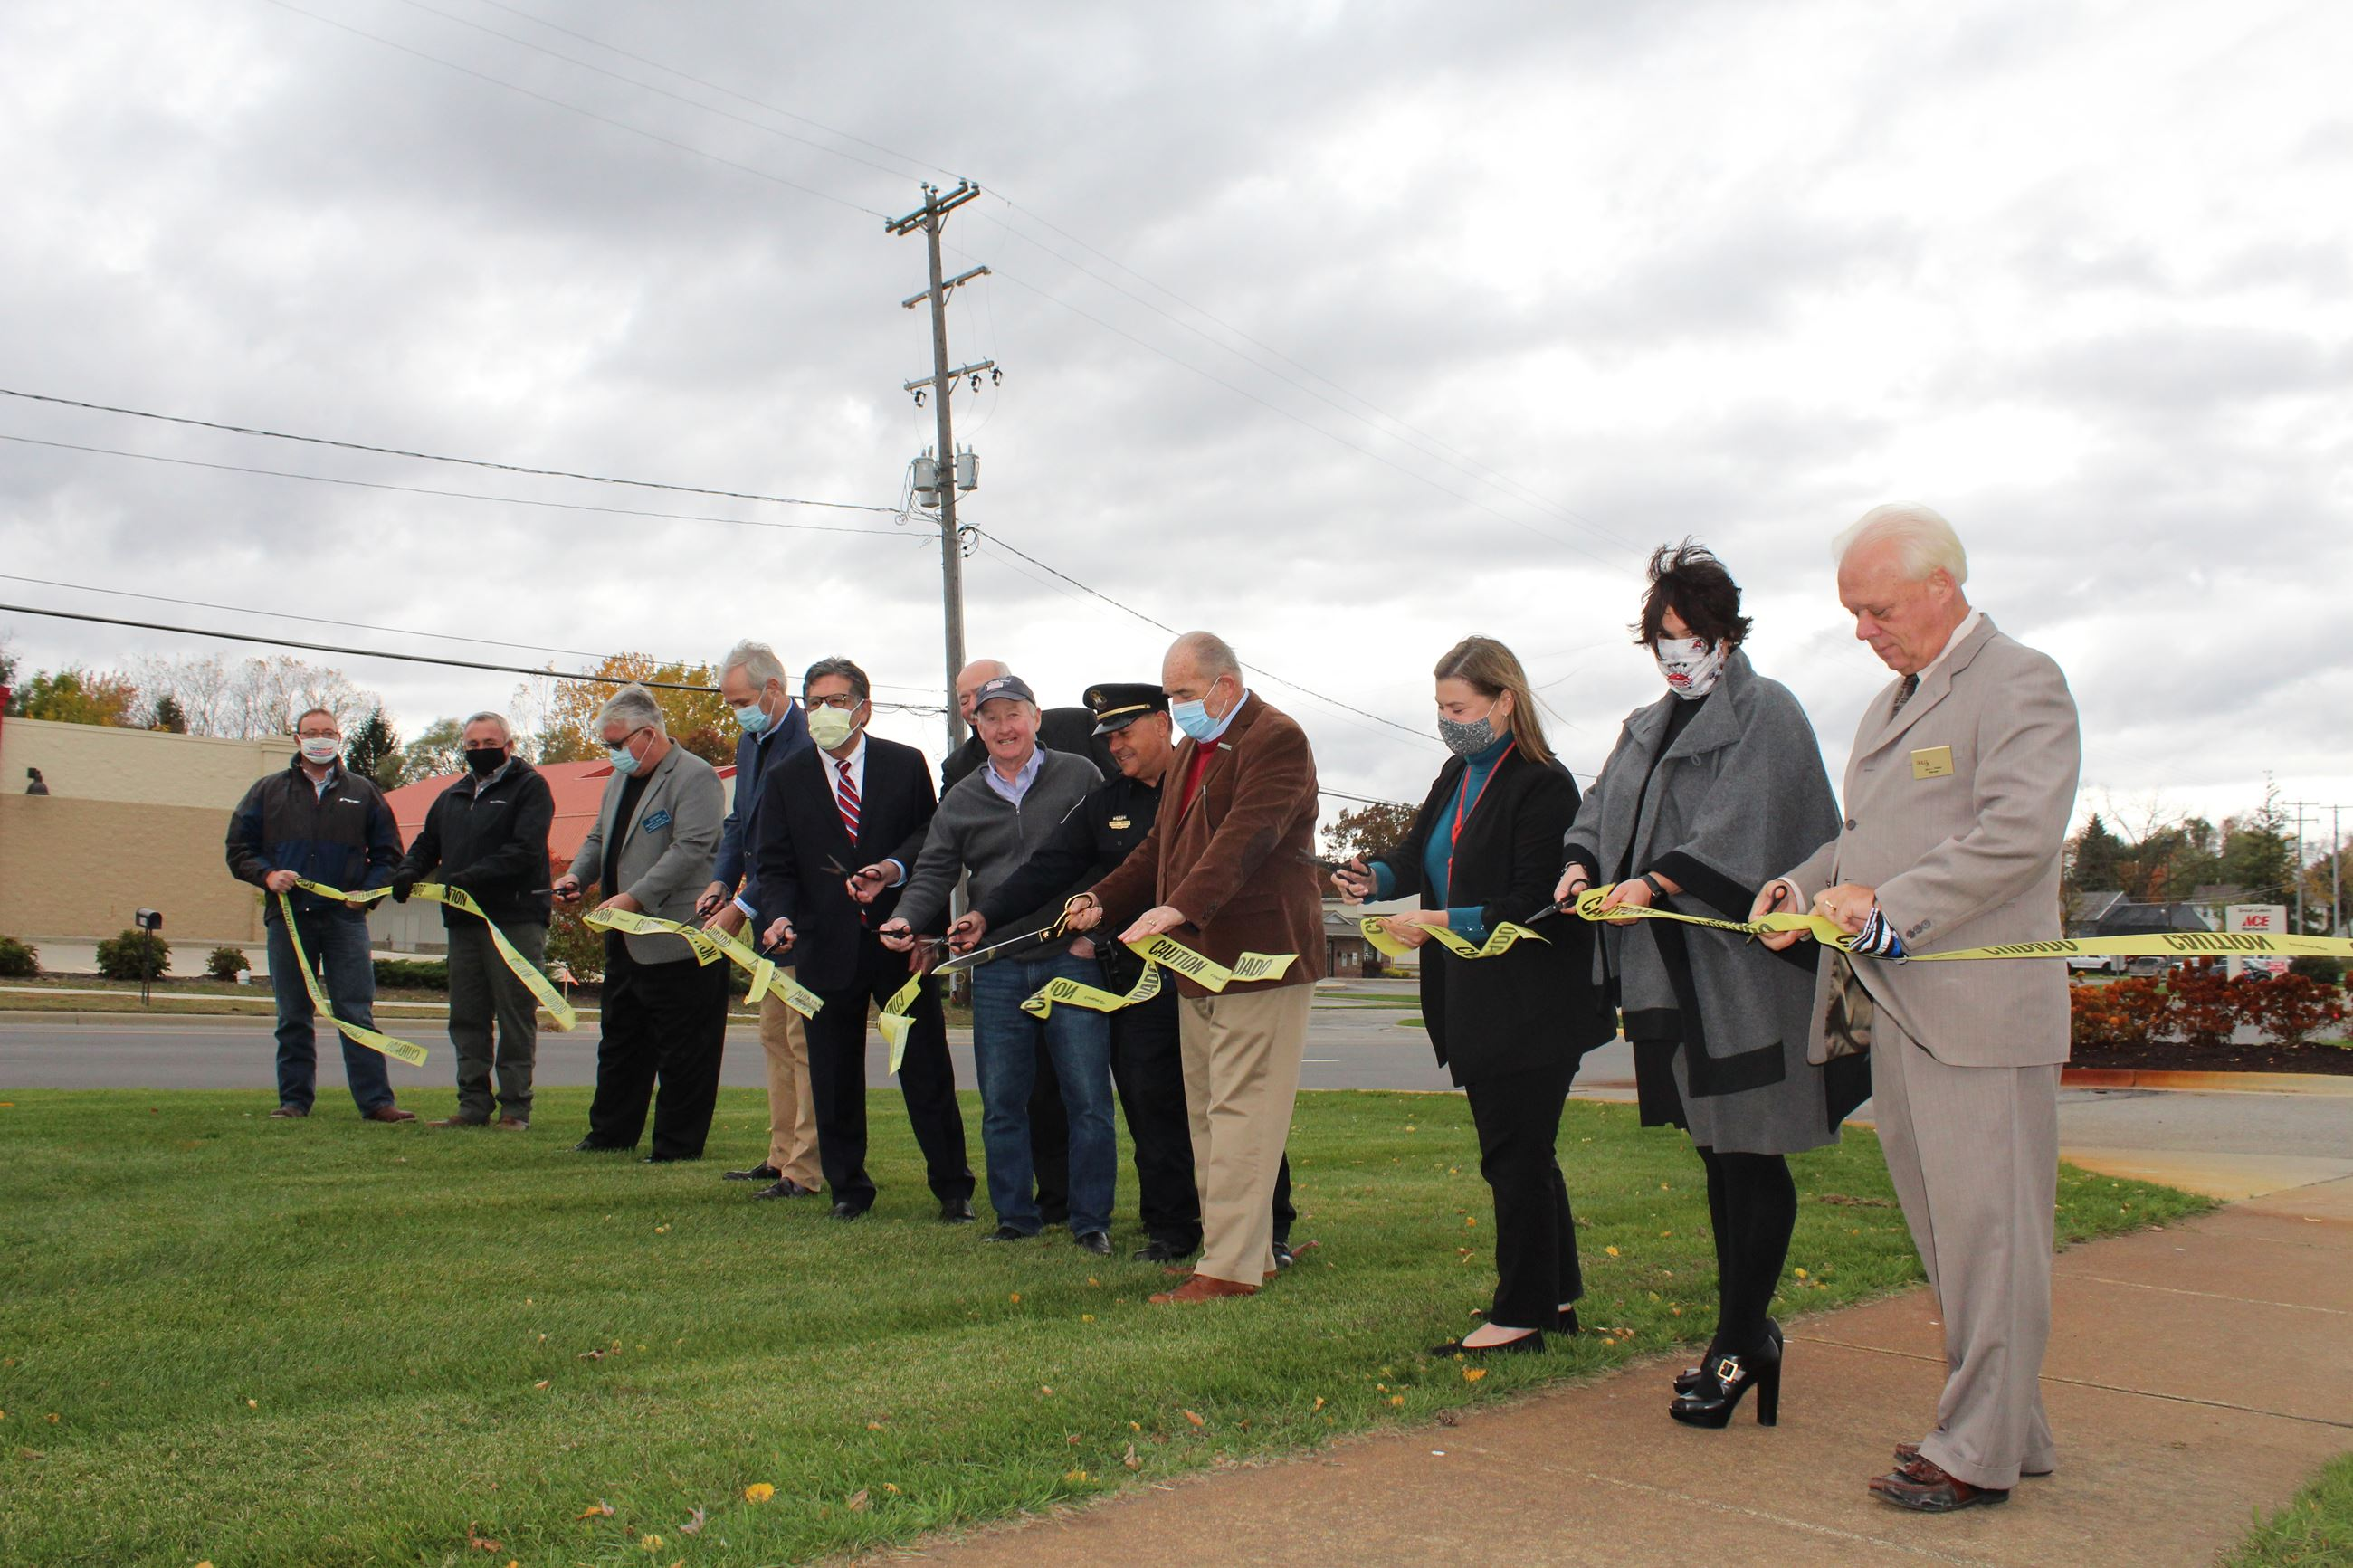 Holly Road Ribbon Cutting with dignitaries on Oct. 15, 2020